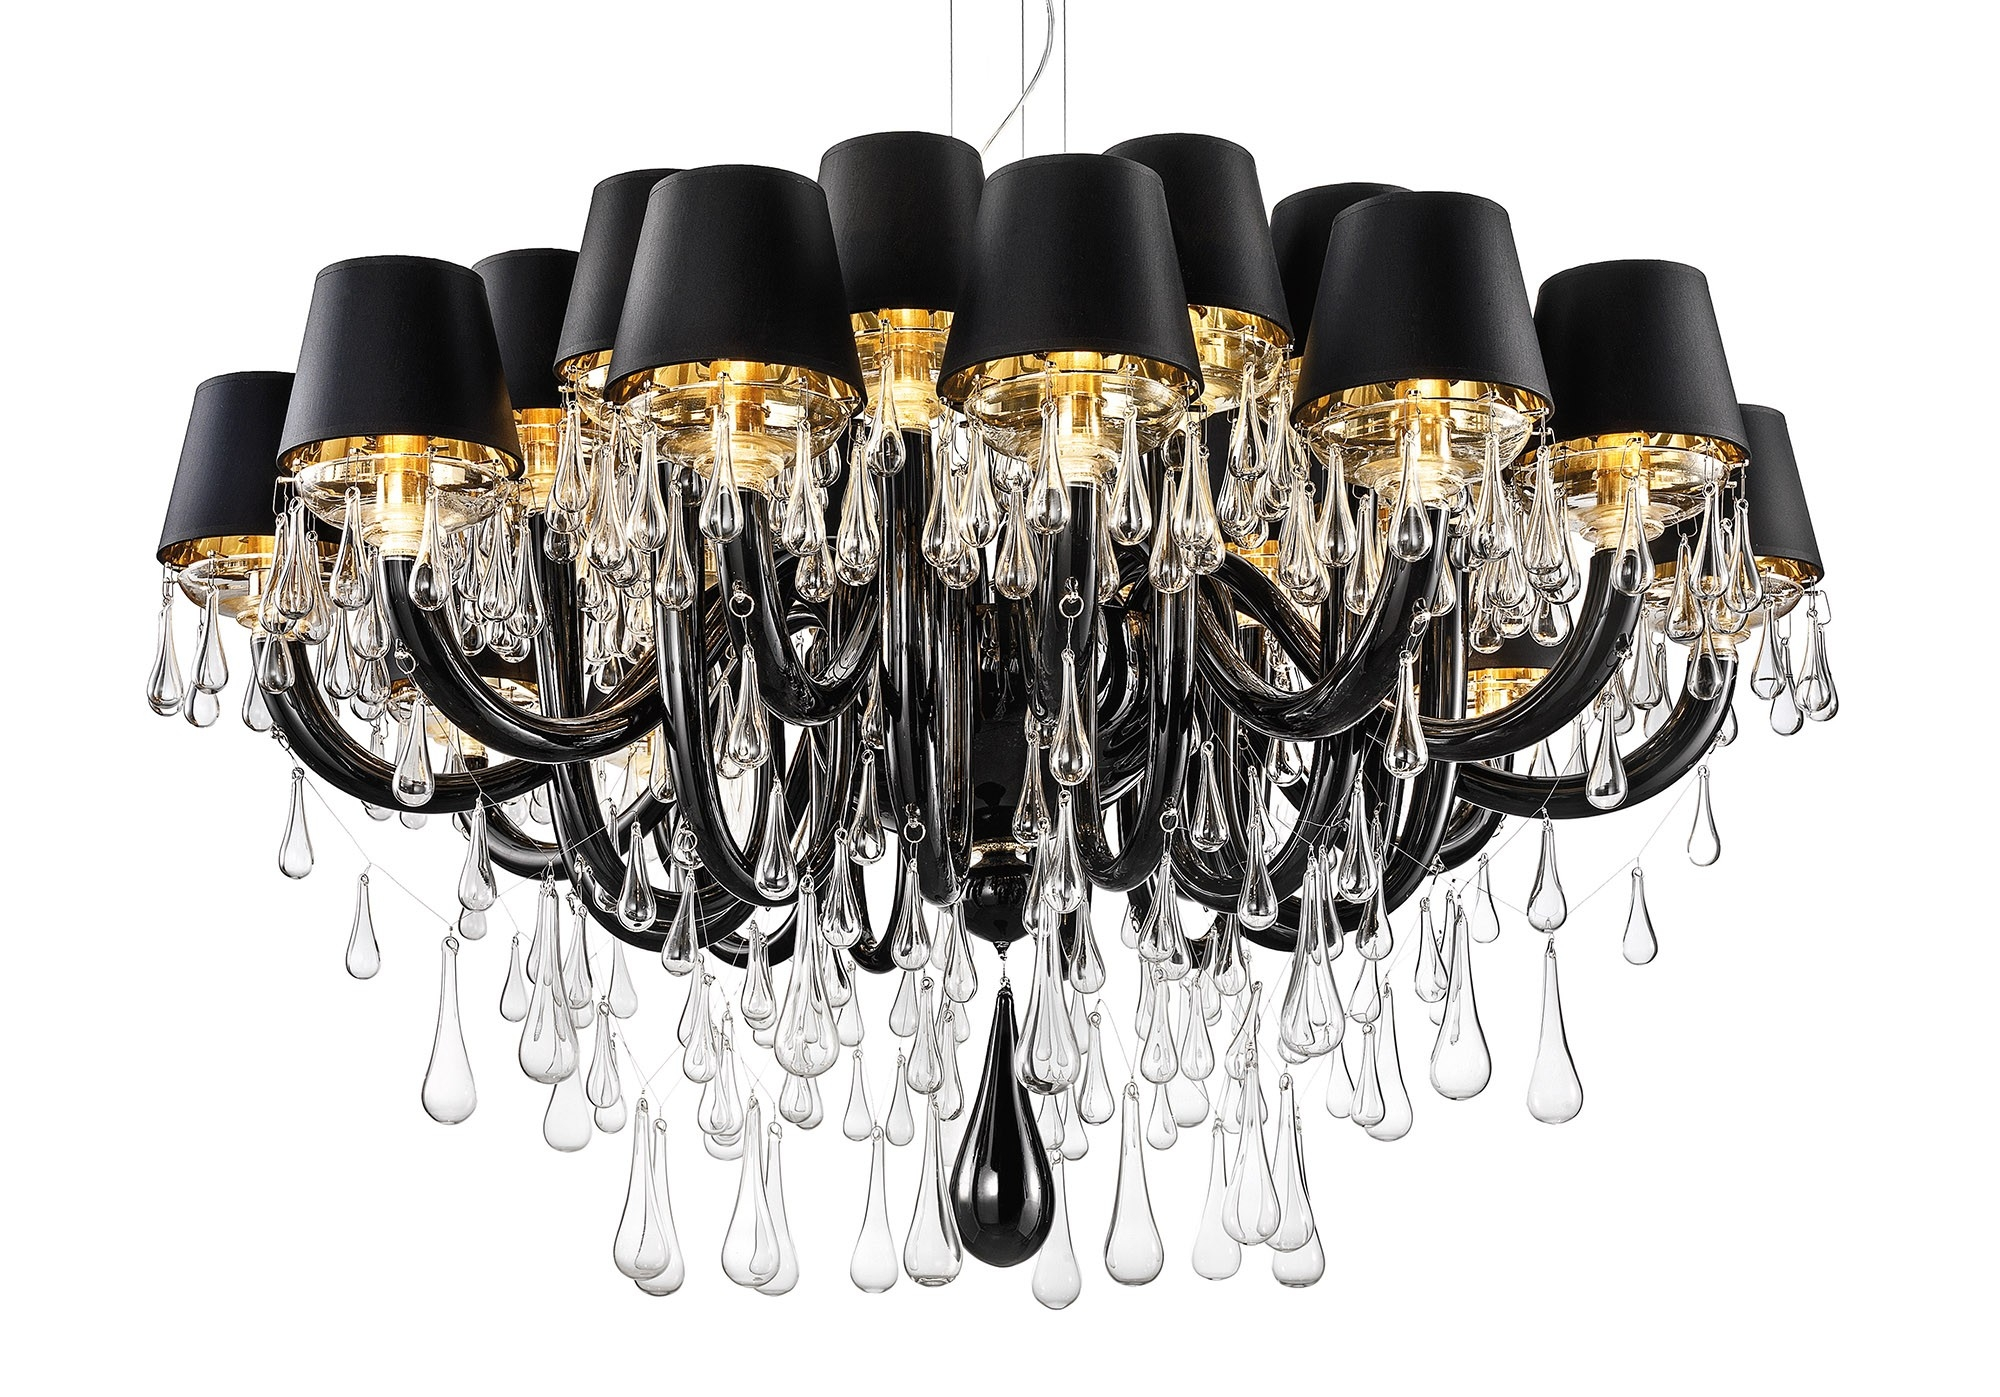 Modern Chandelier Black Within Chandeliers With Black Shades (Image 17 of 25)